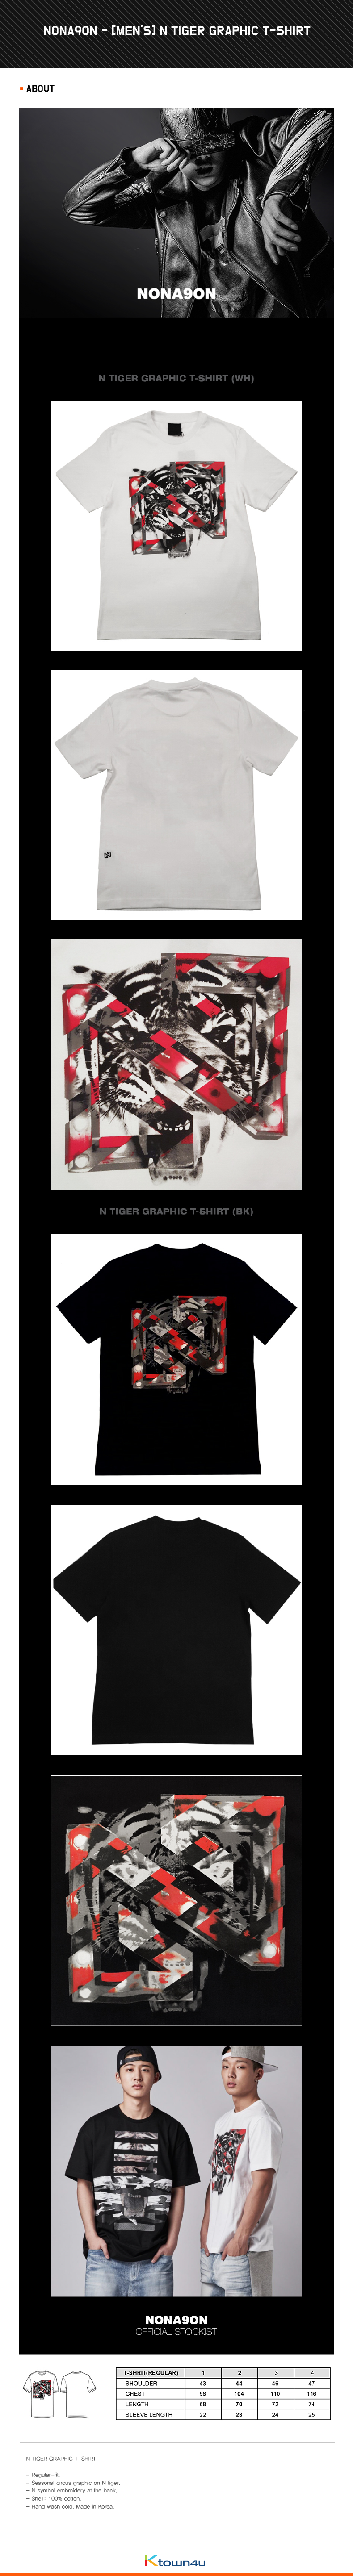 [iKON BOBBY, B.I] NONA9ON - [MEN'S] N TIGER GRAPHIC T-SHIRT